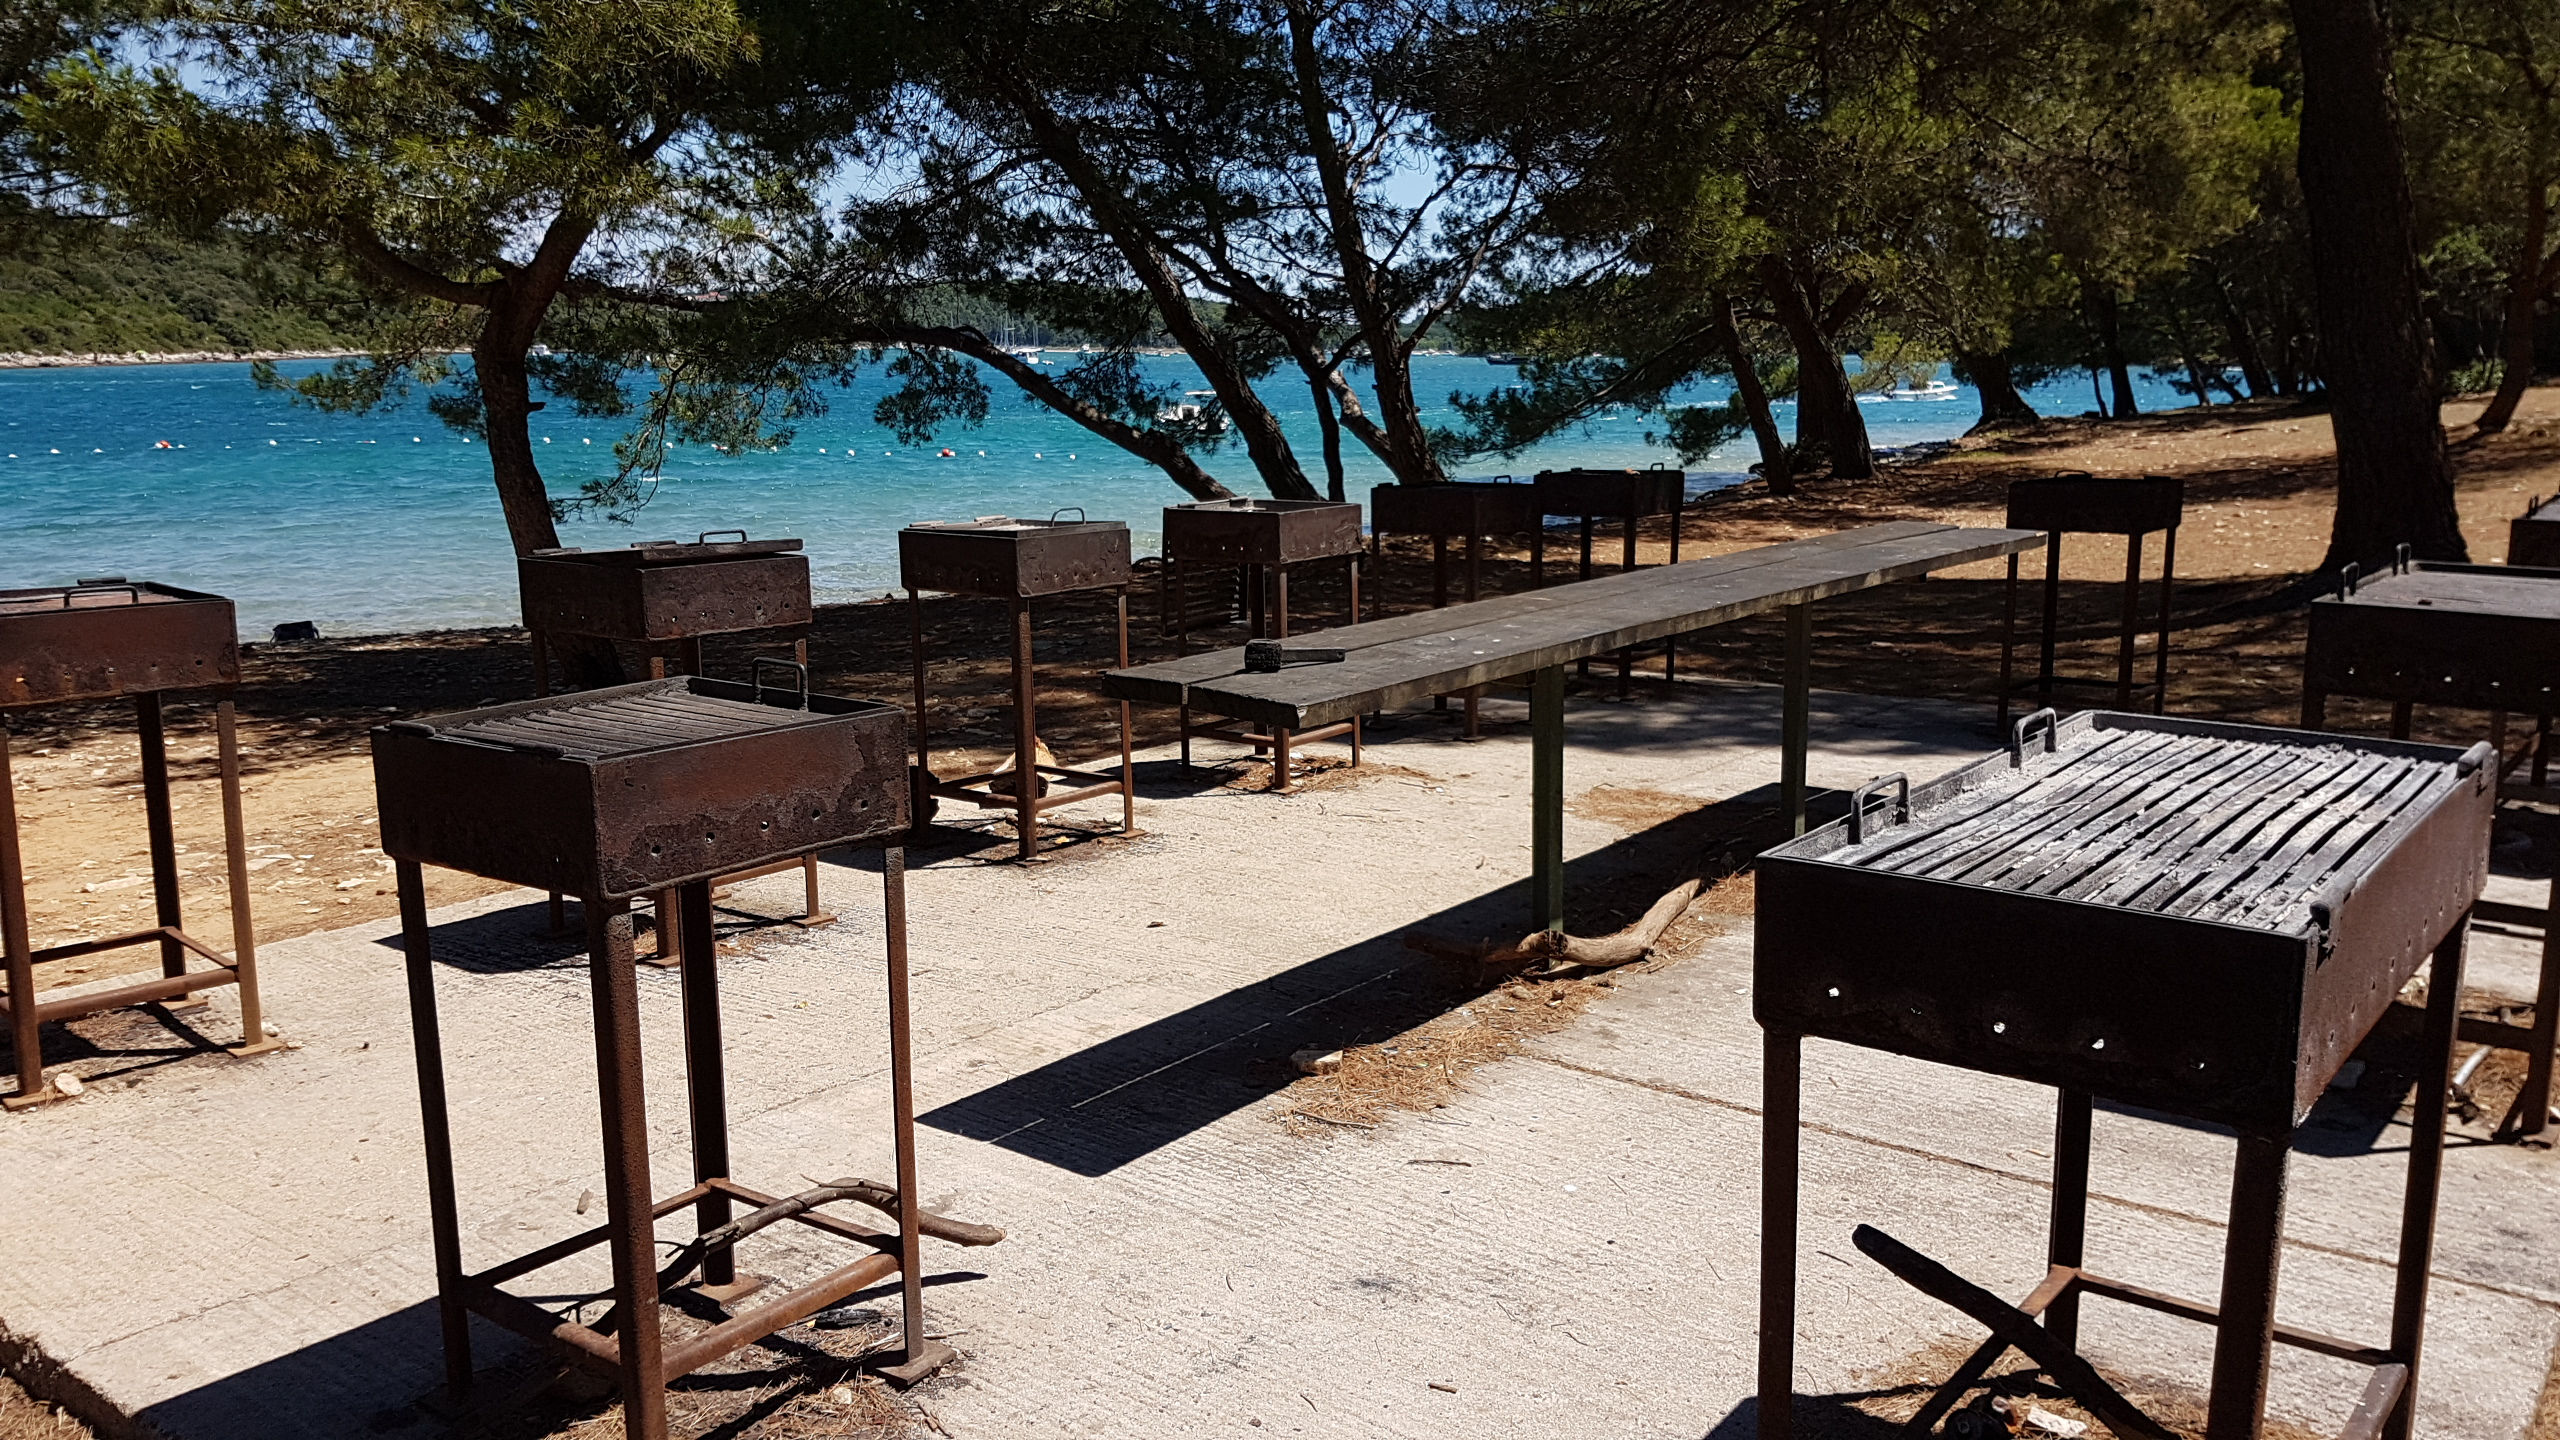 SPEND YOUR HOLIDAY CAMPING ON THE VERUDA (FRATARSKI) ISLAND NEAR PULA